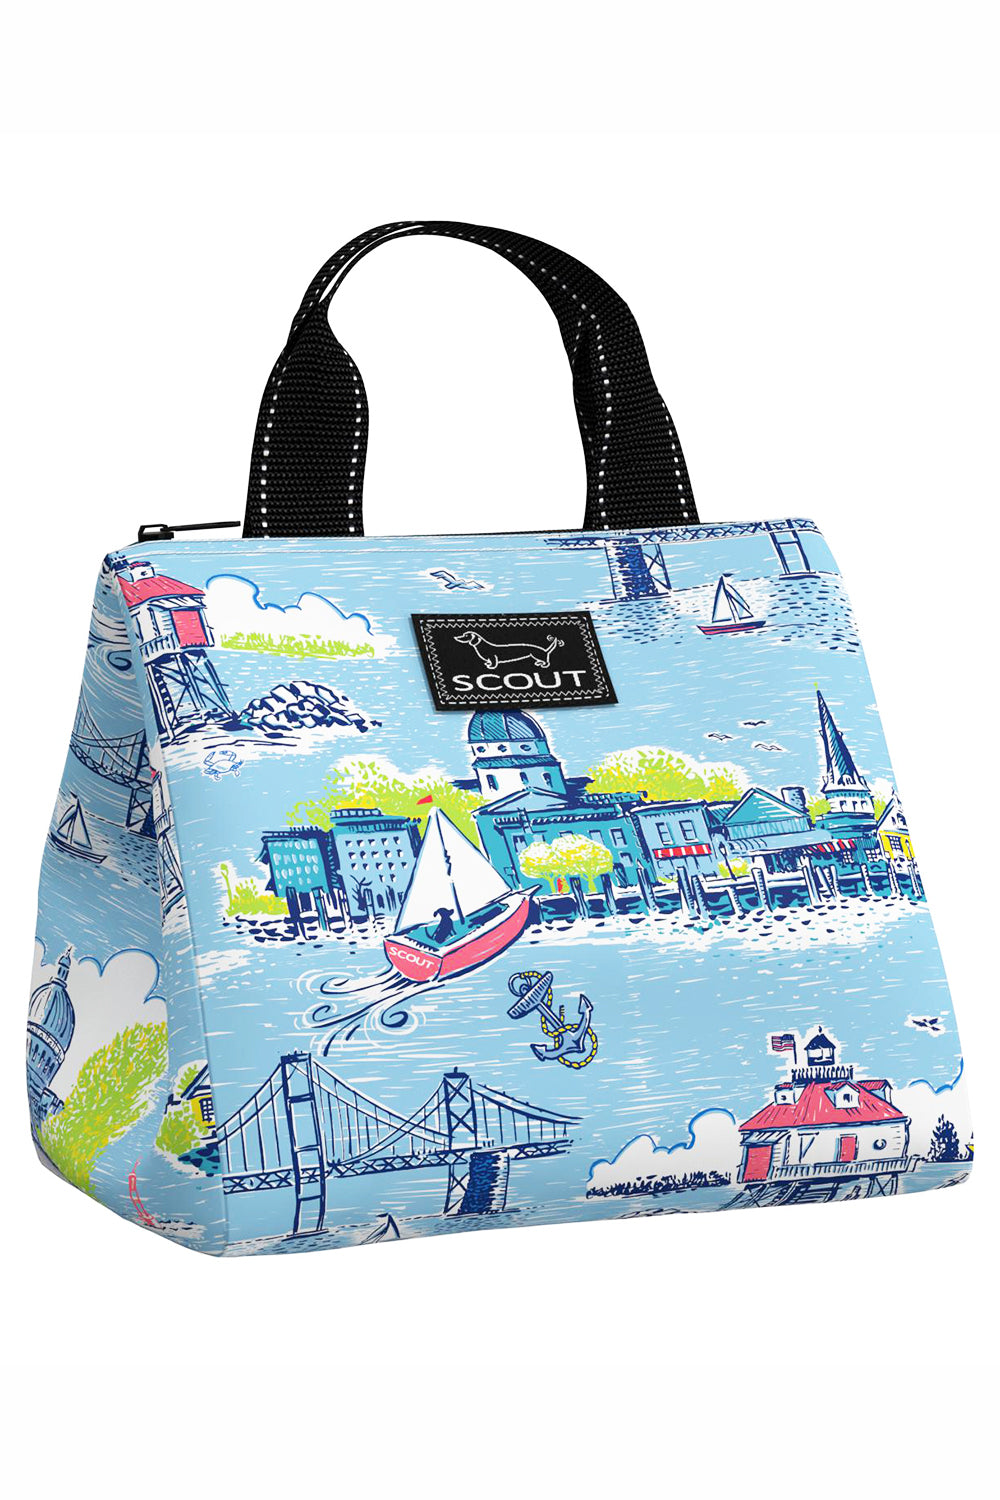 "Eloise Lunch Cooler - ""Exclusive Annapolis at Whimsicality"""